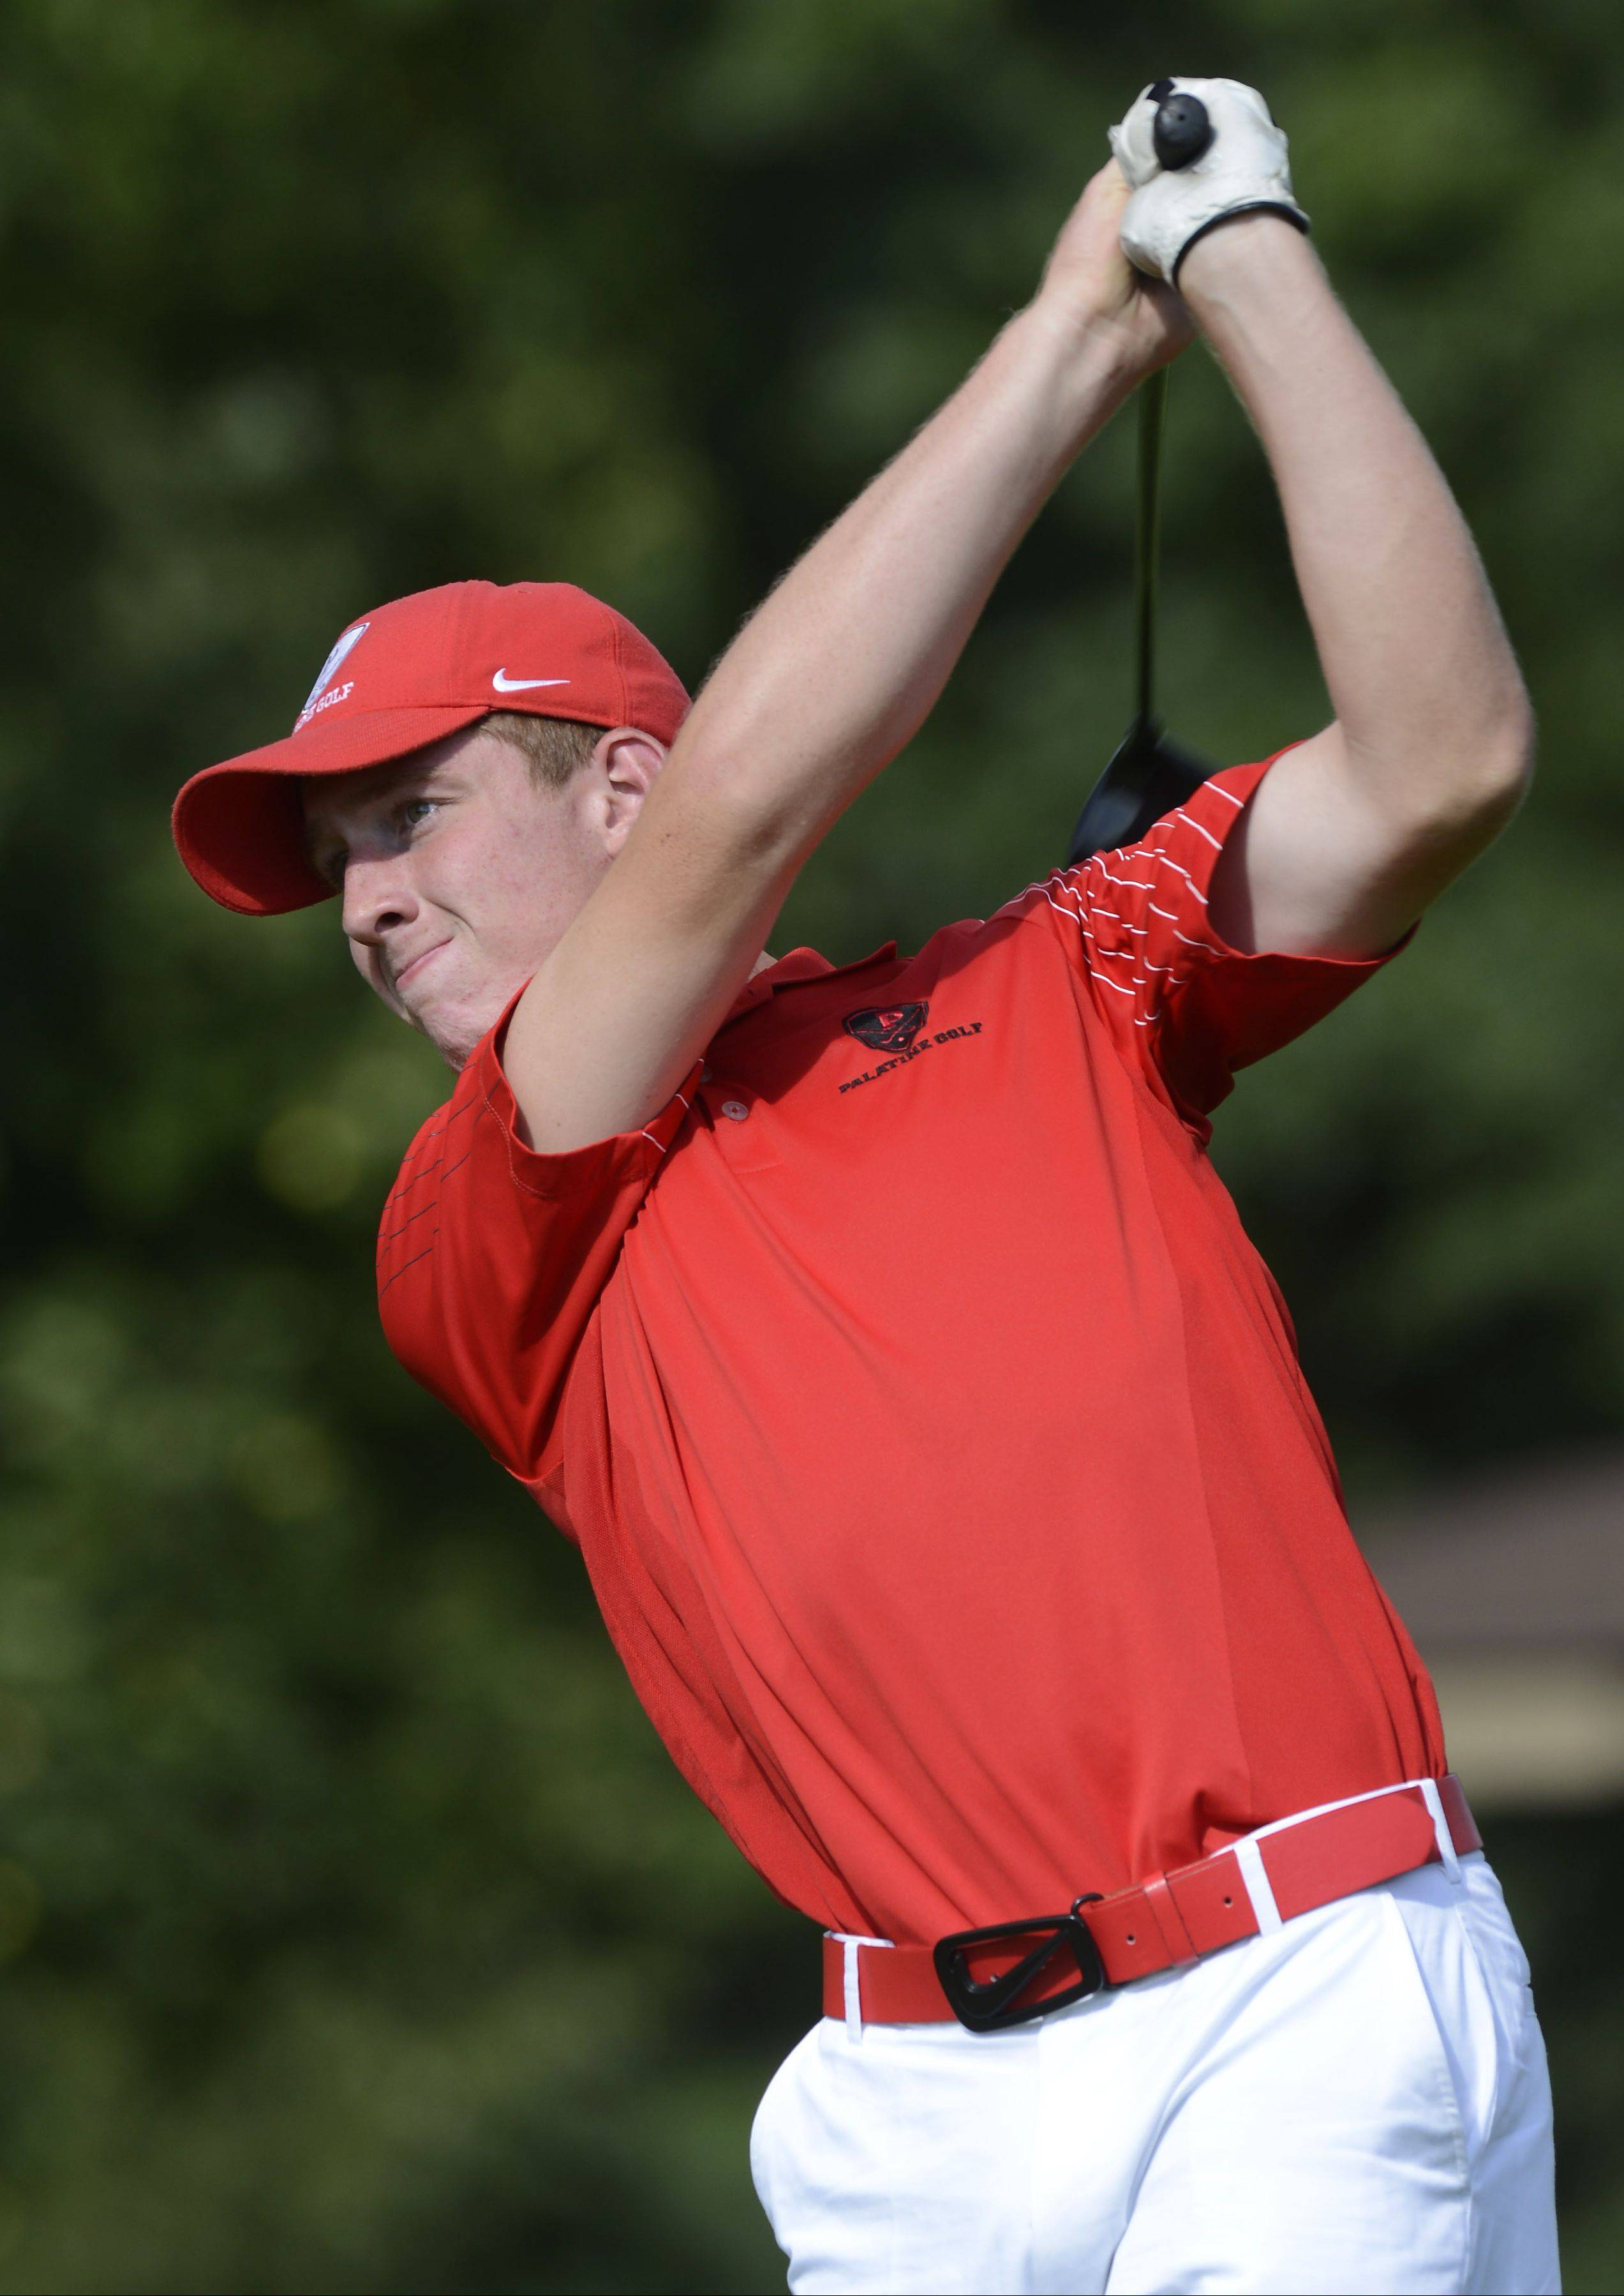 Palatine's Tim Klein tees off on No. 2 during Wednesday's match with Prospect and Conant at Palatine Hills Golf Course.